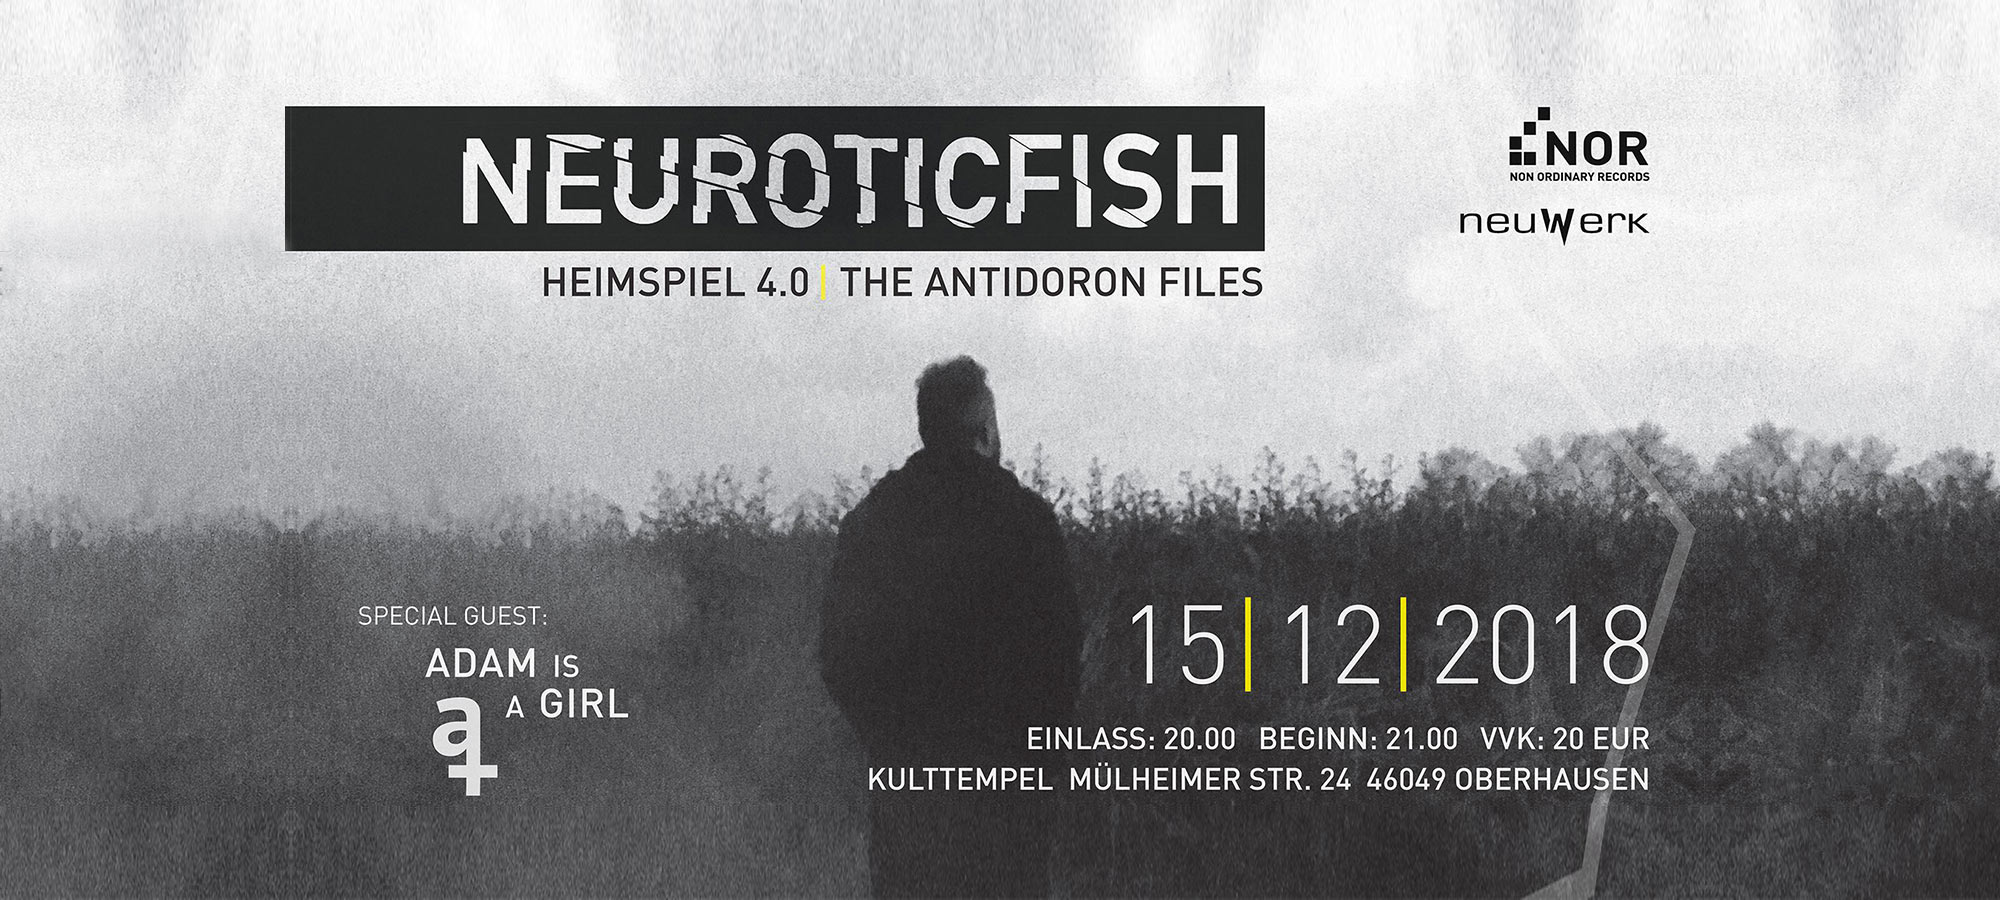 Neuroticfish